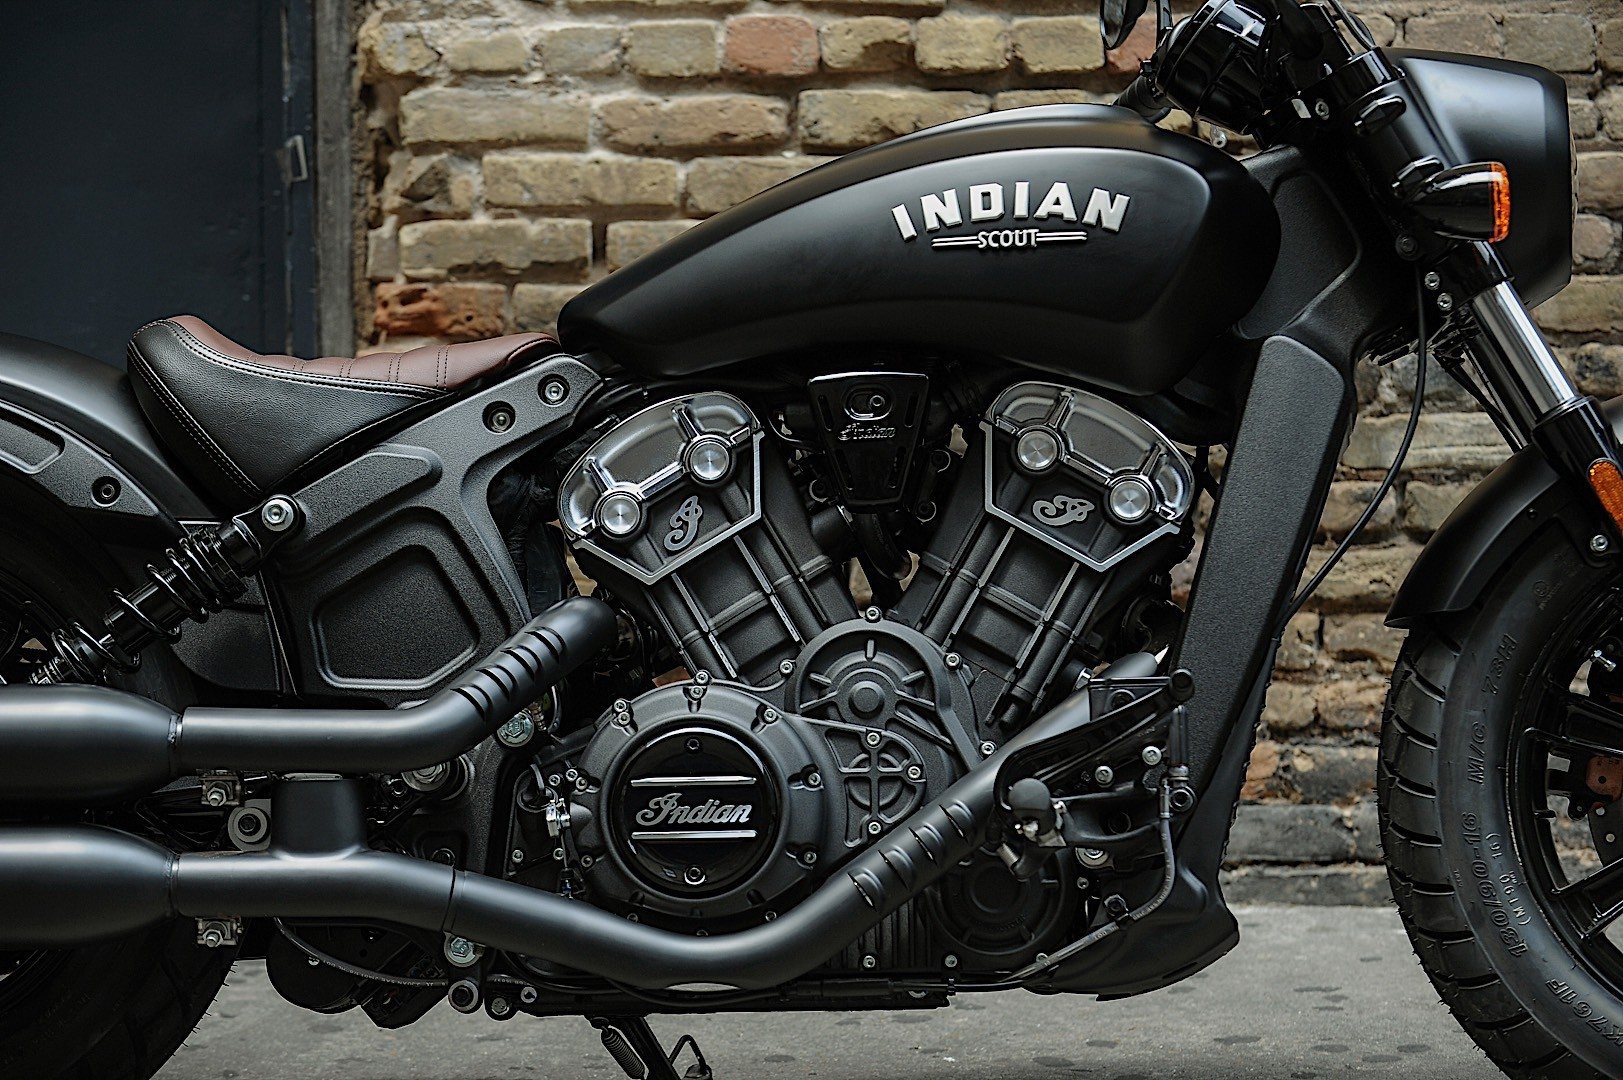 2018 Indian Motorcycle Lineup